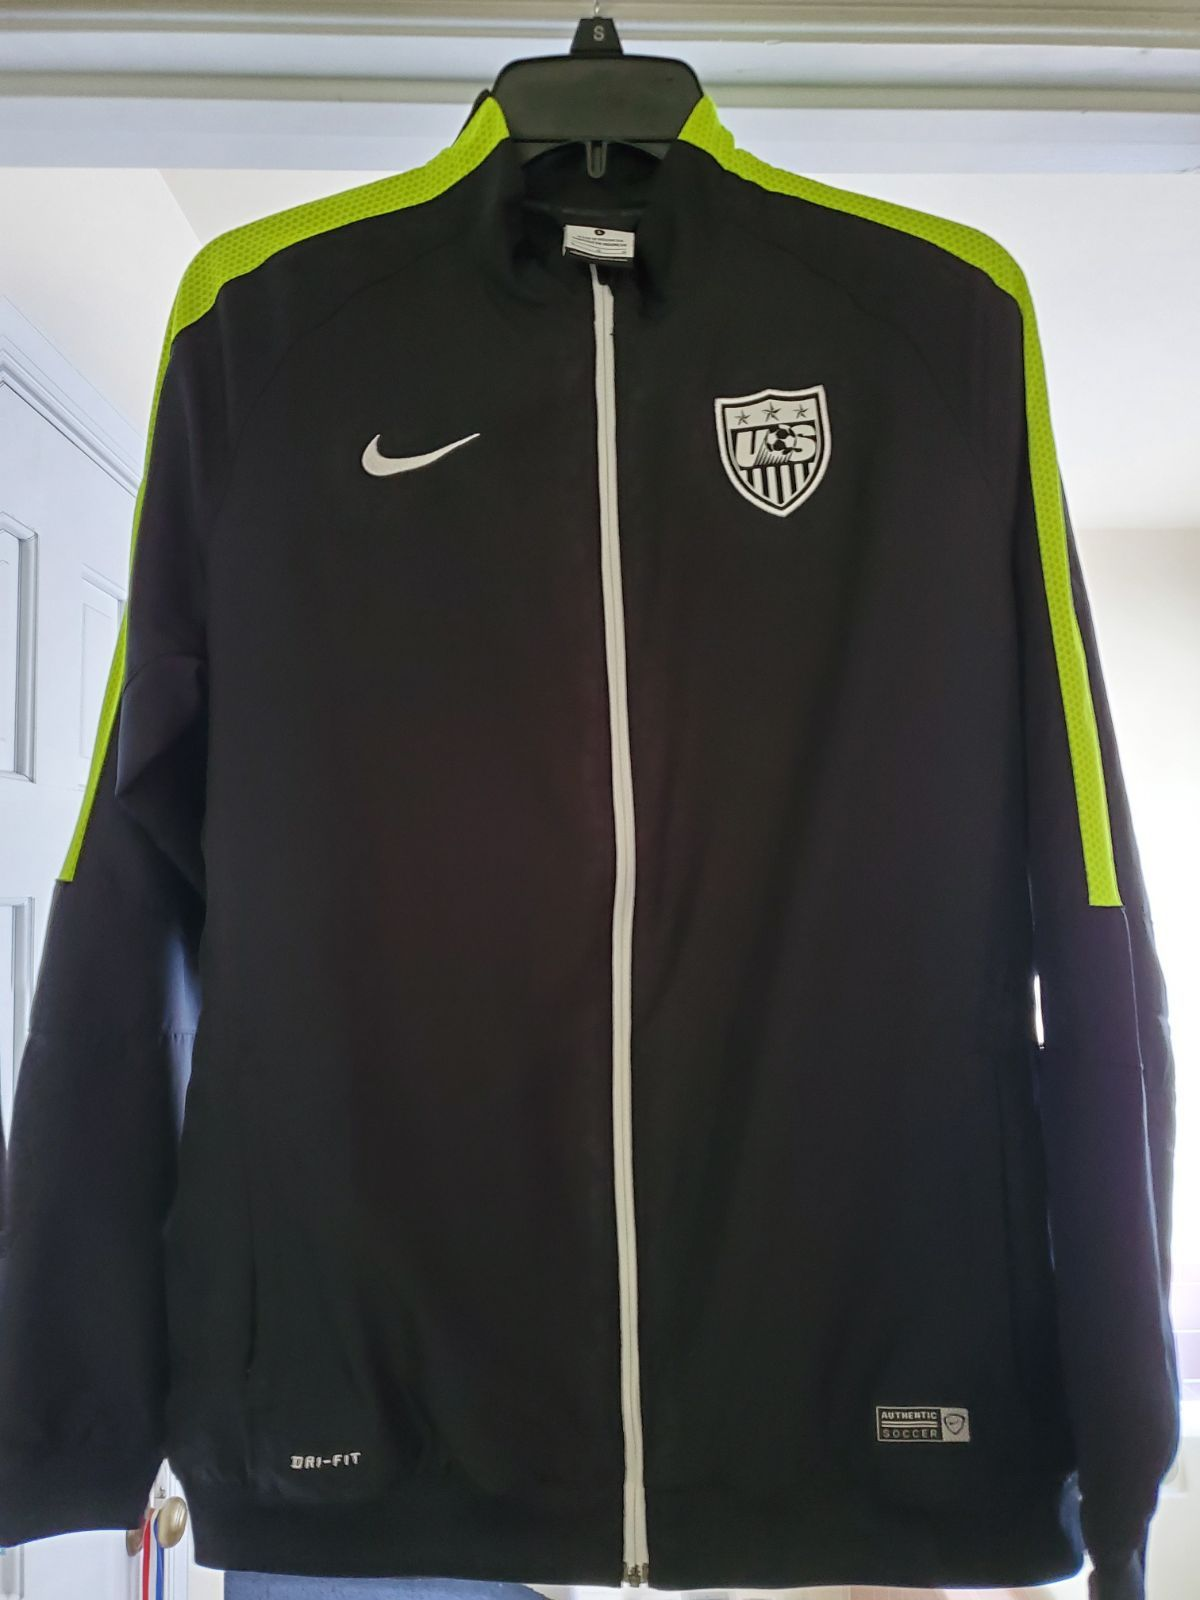 Gently used USA Soccer track suit. Womens sizing (or big